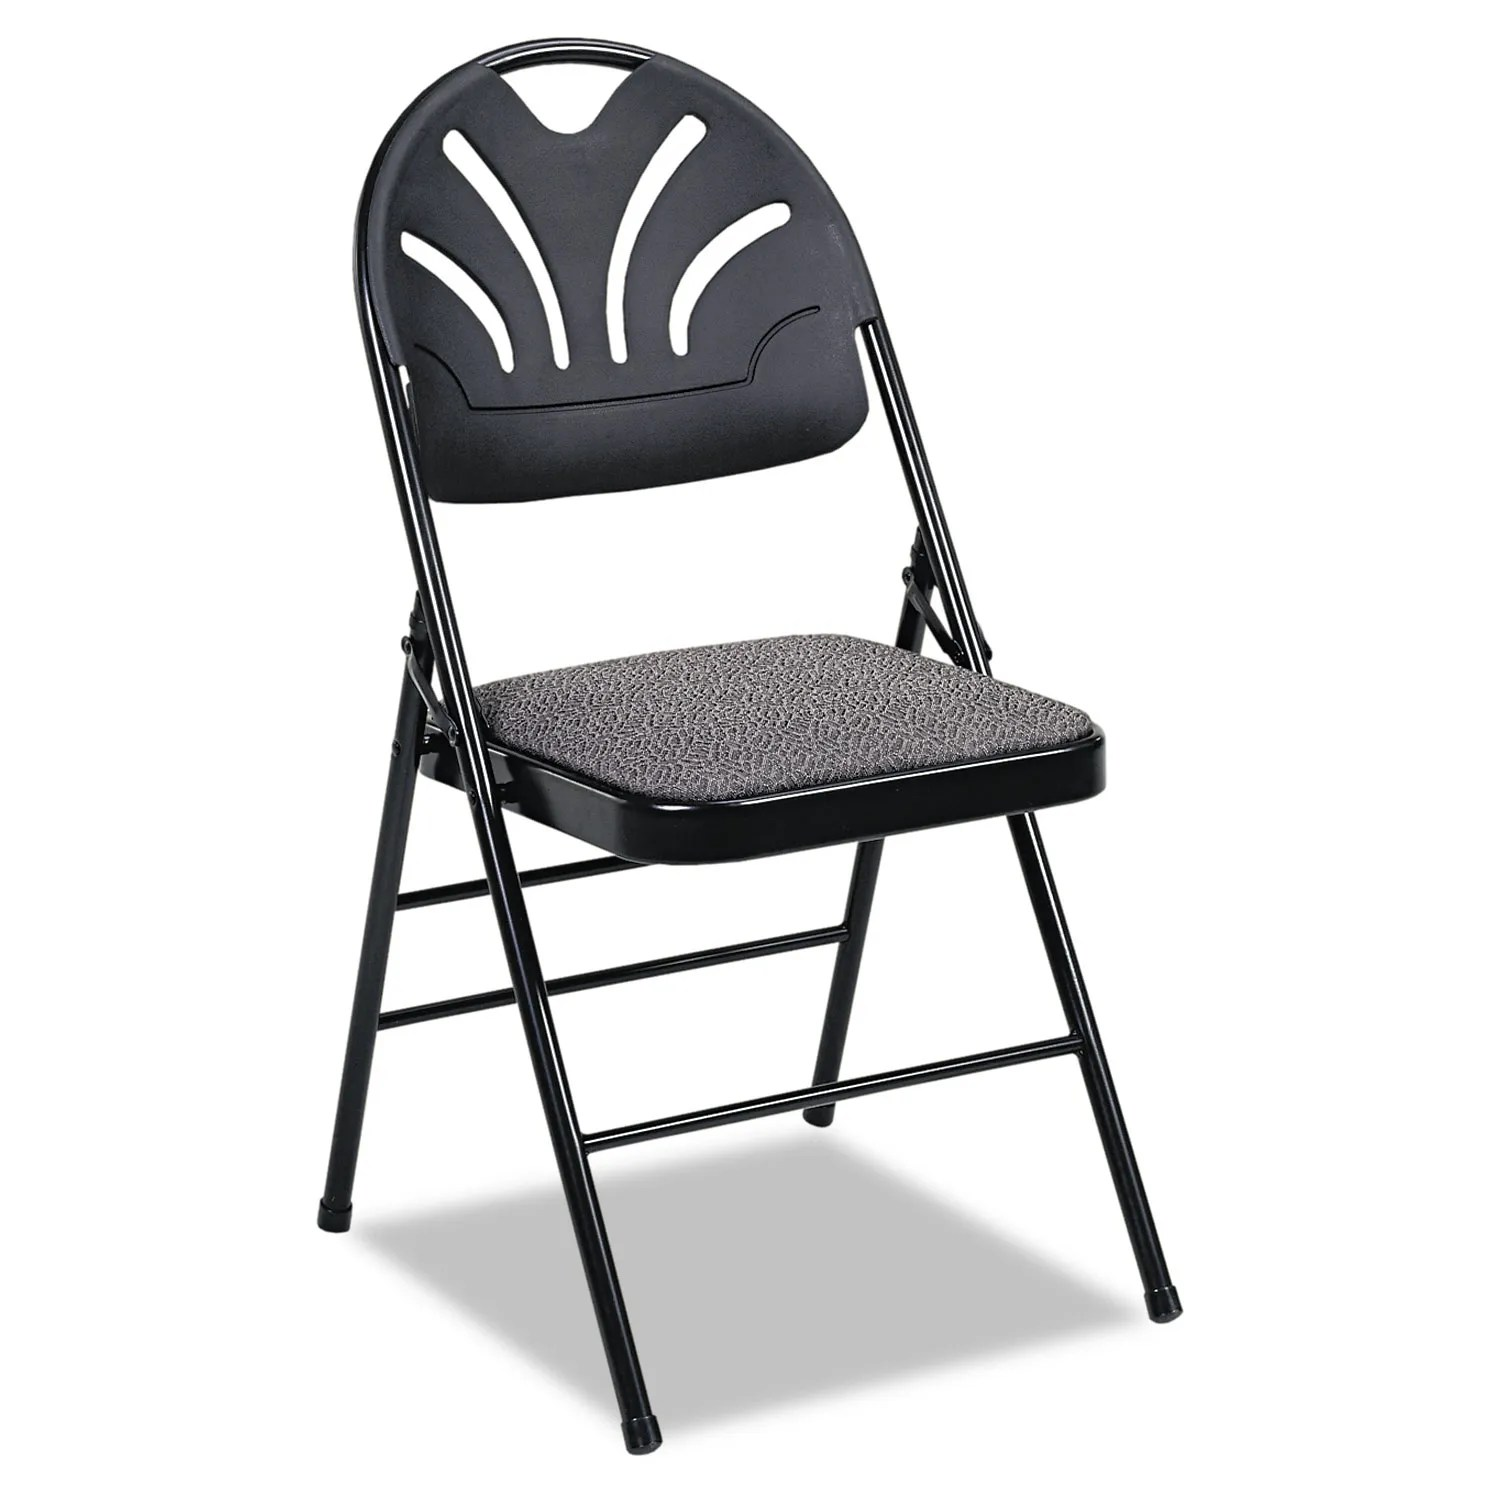 Cosco Folding Chair Fabric Padded Seat Molded Fan Back Folding Chair By Cosco